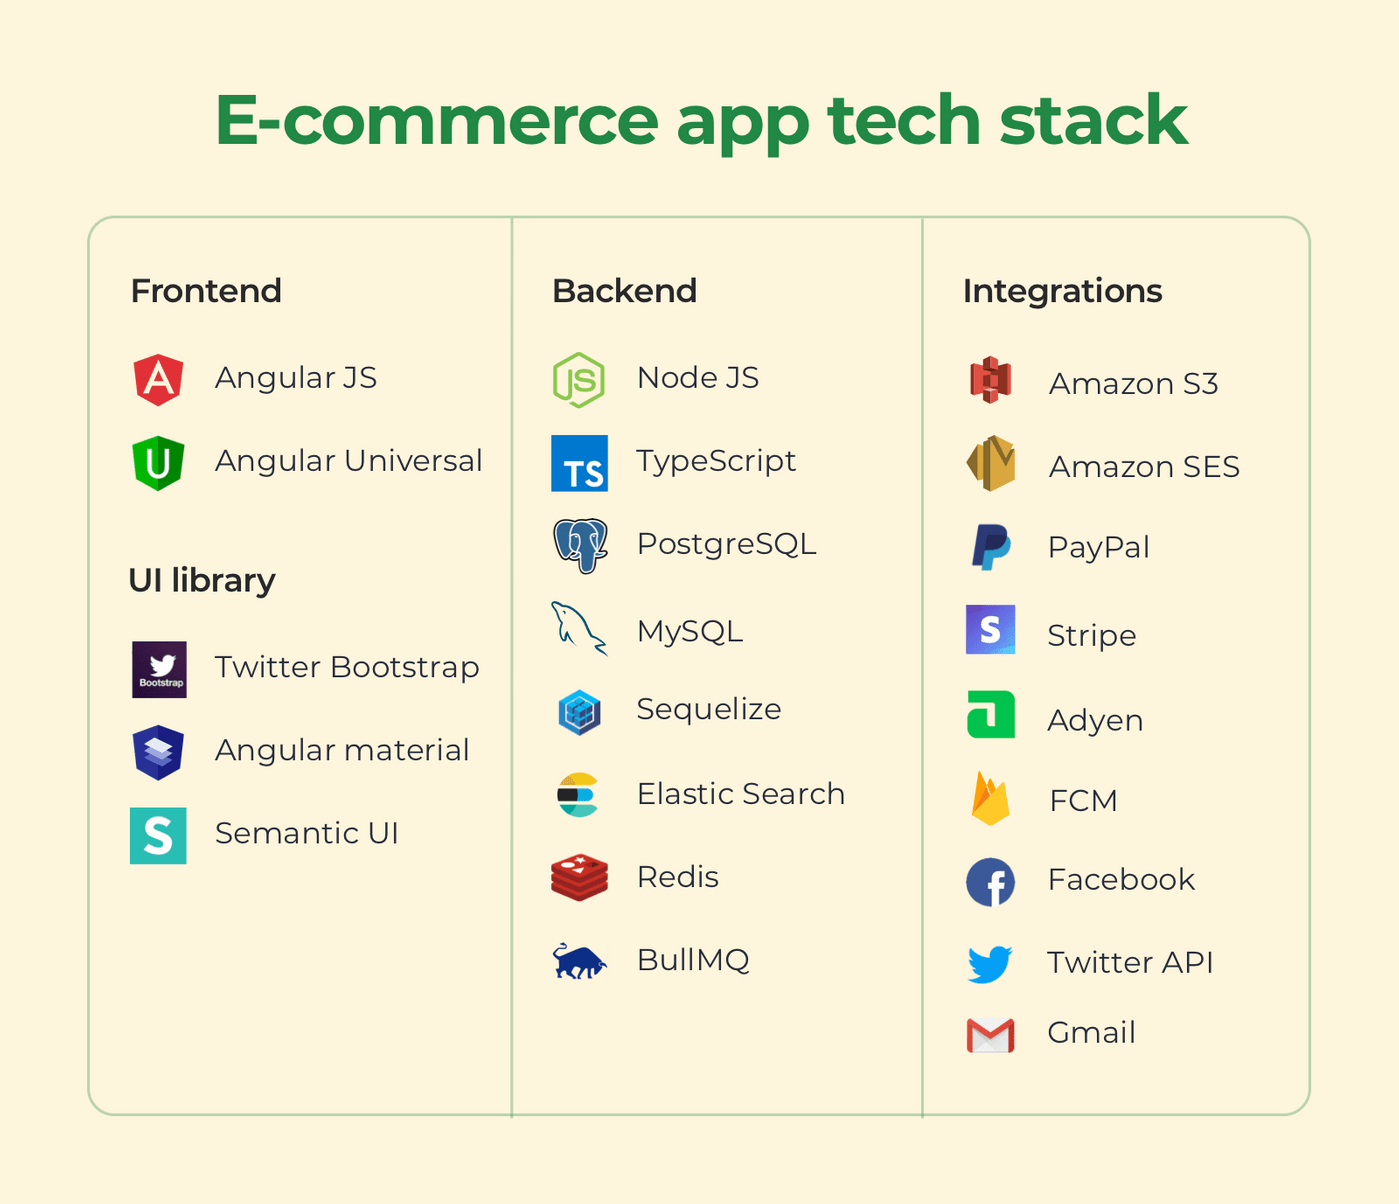 Common technologies for an e-Commerce app